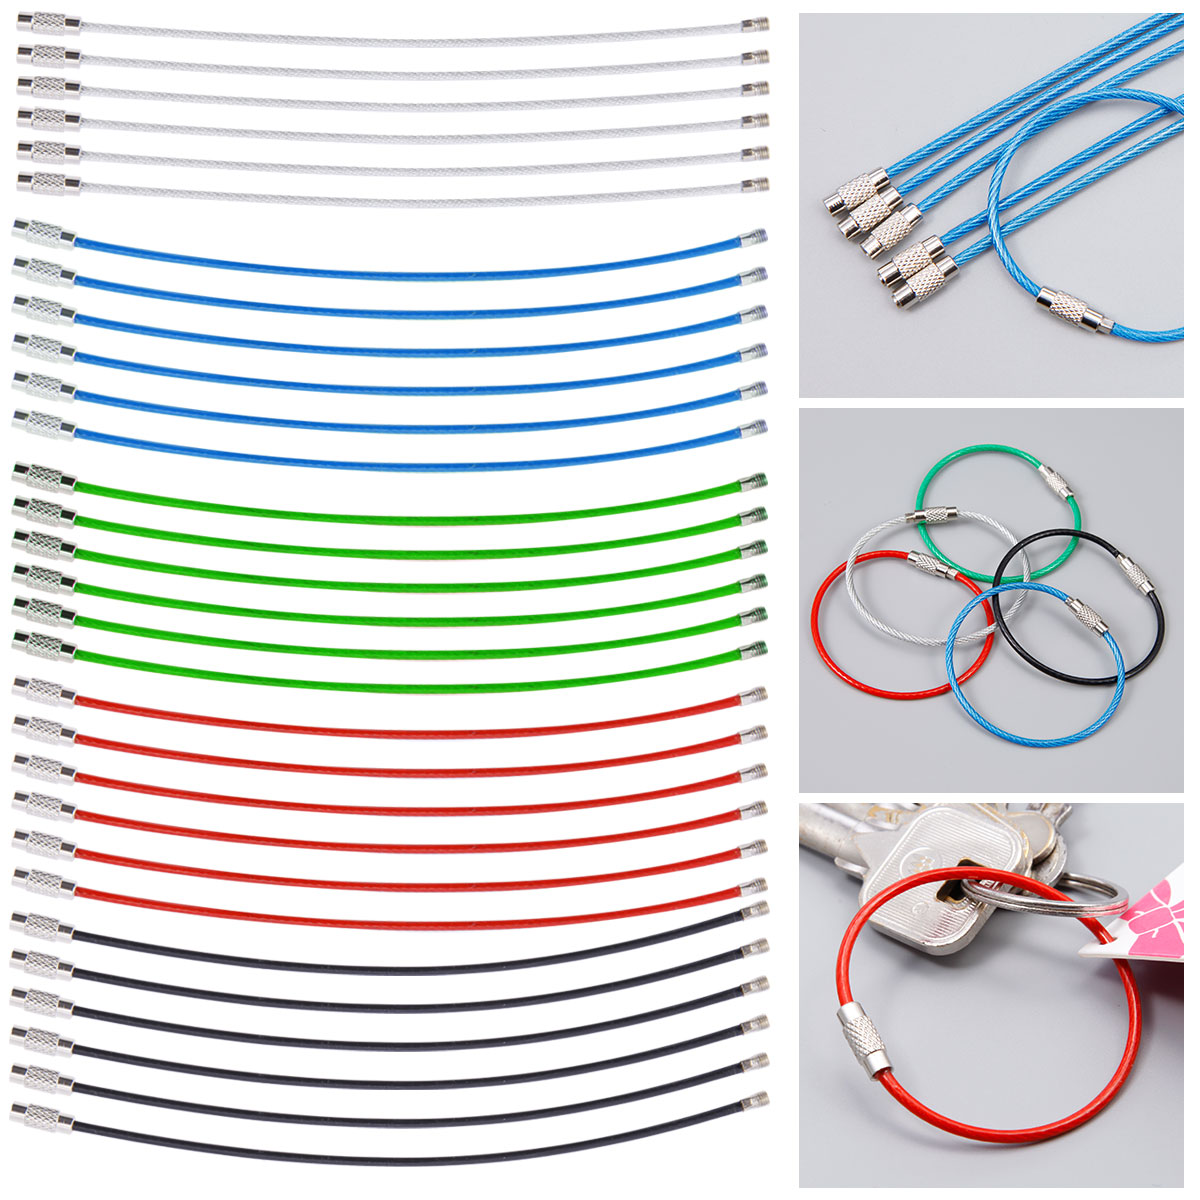 hight resolution of 30 40x stainless steel wire keychain cable key ring chains outdoor hiking tool